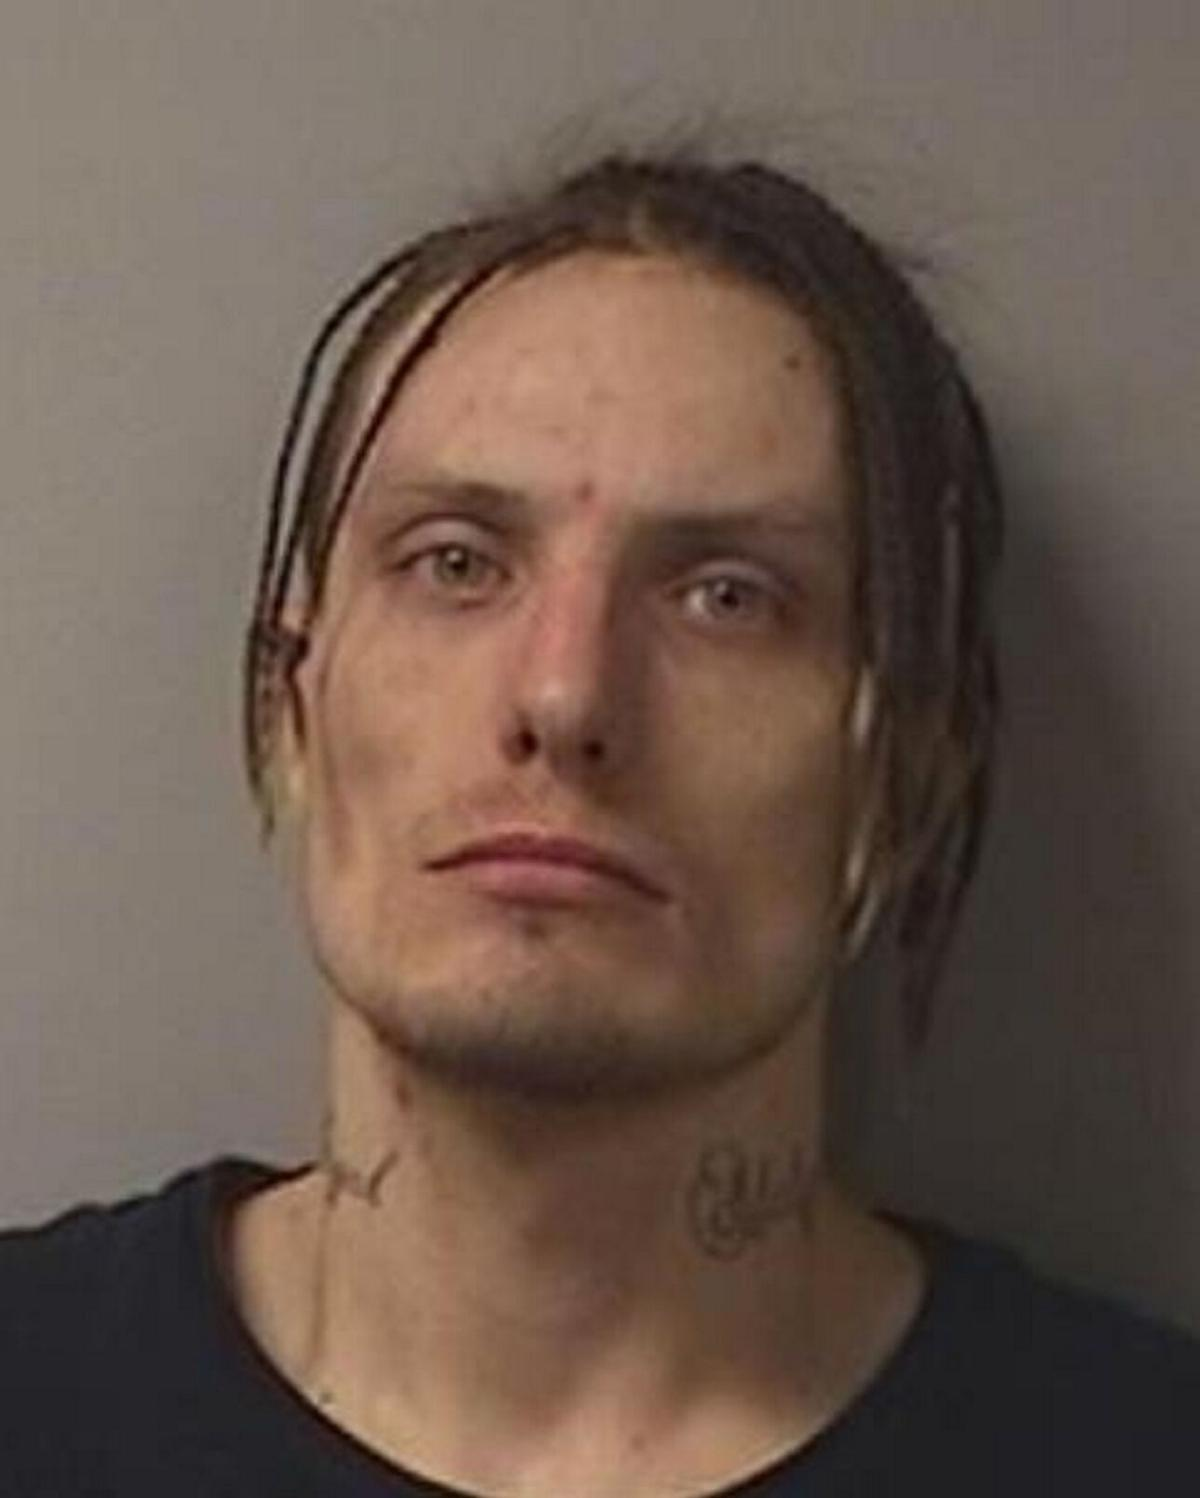 Burglary charge results in jail